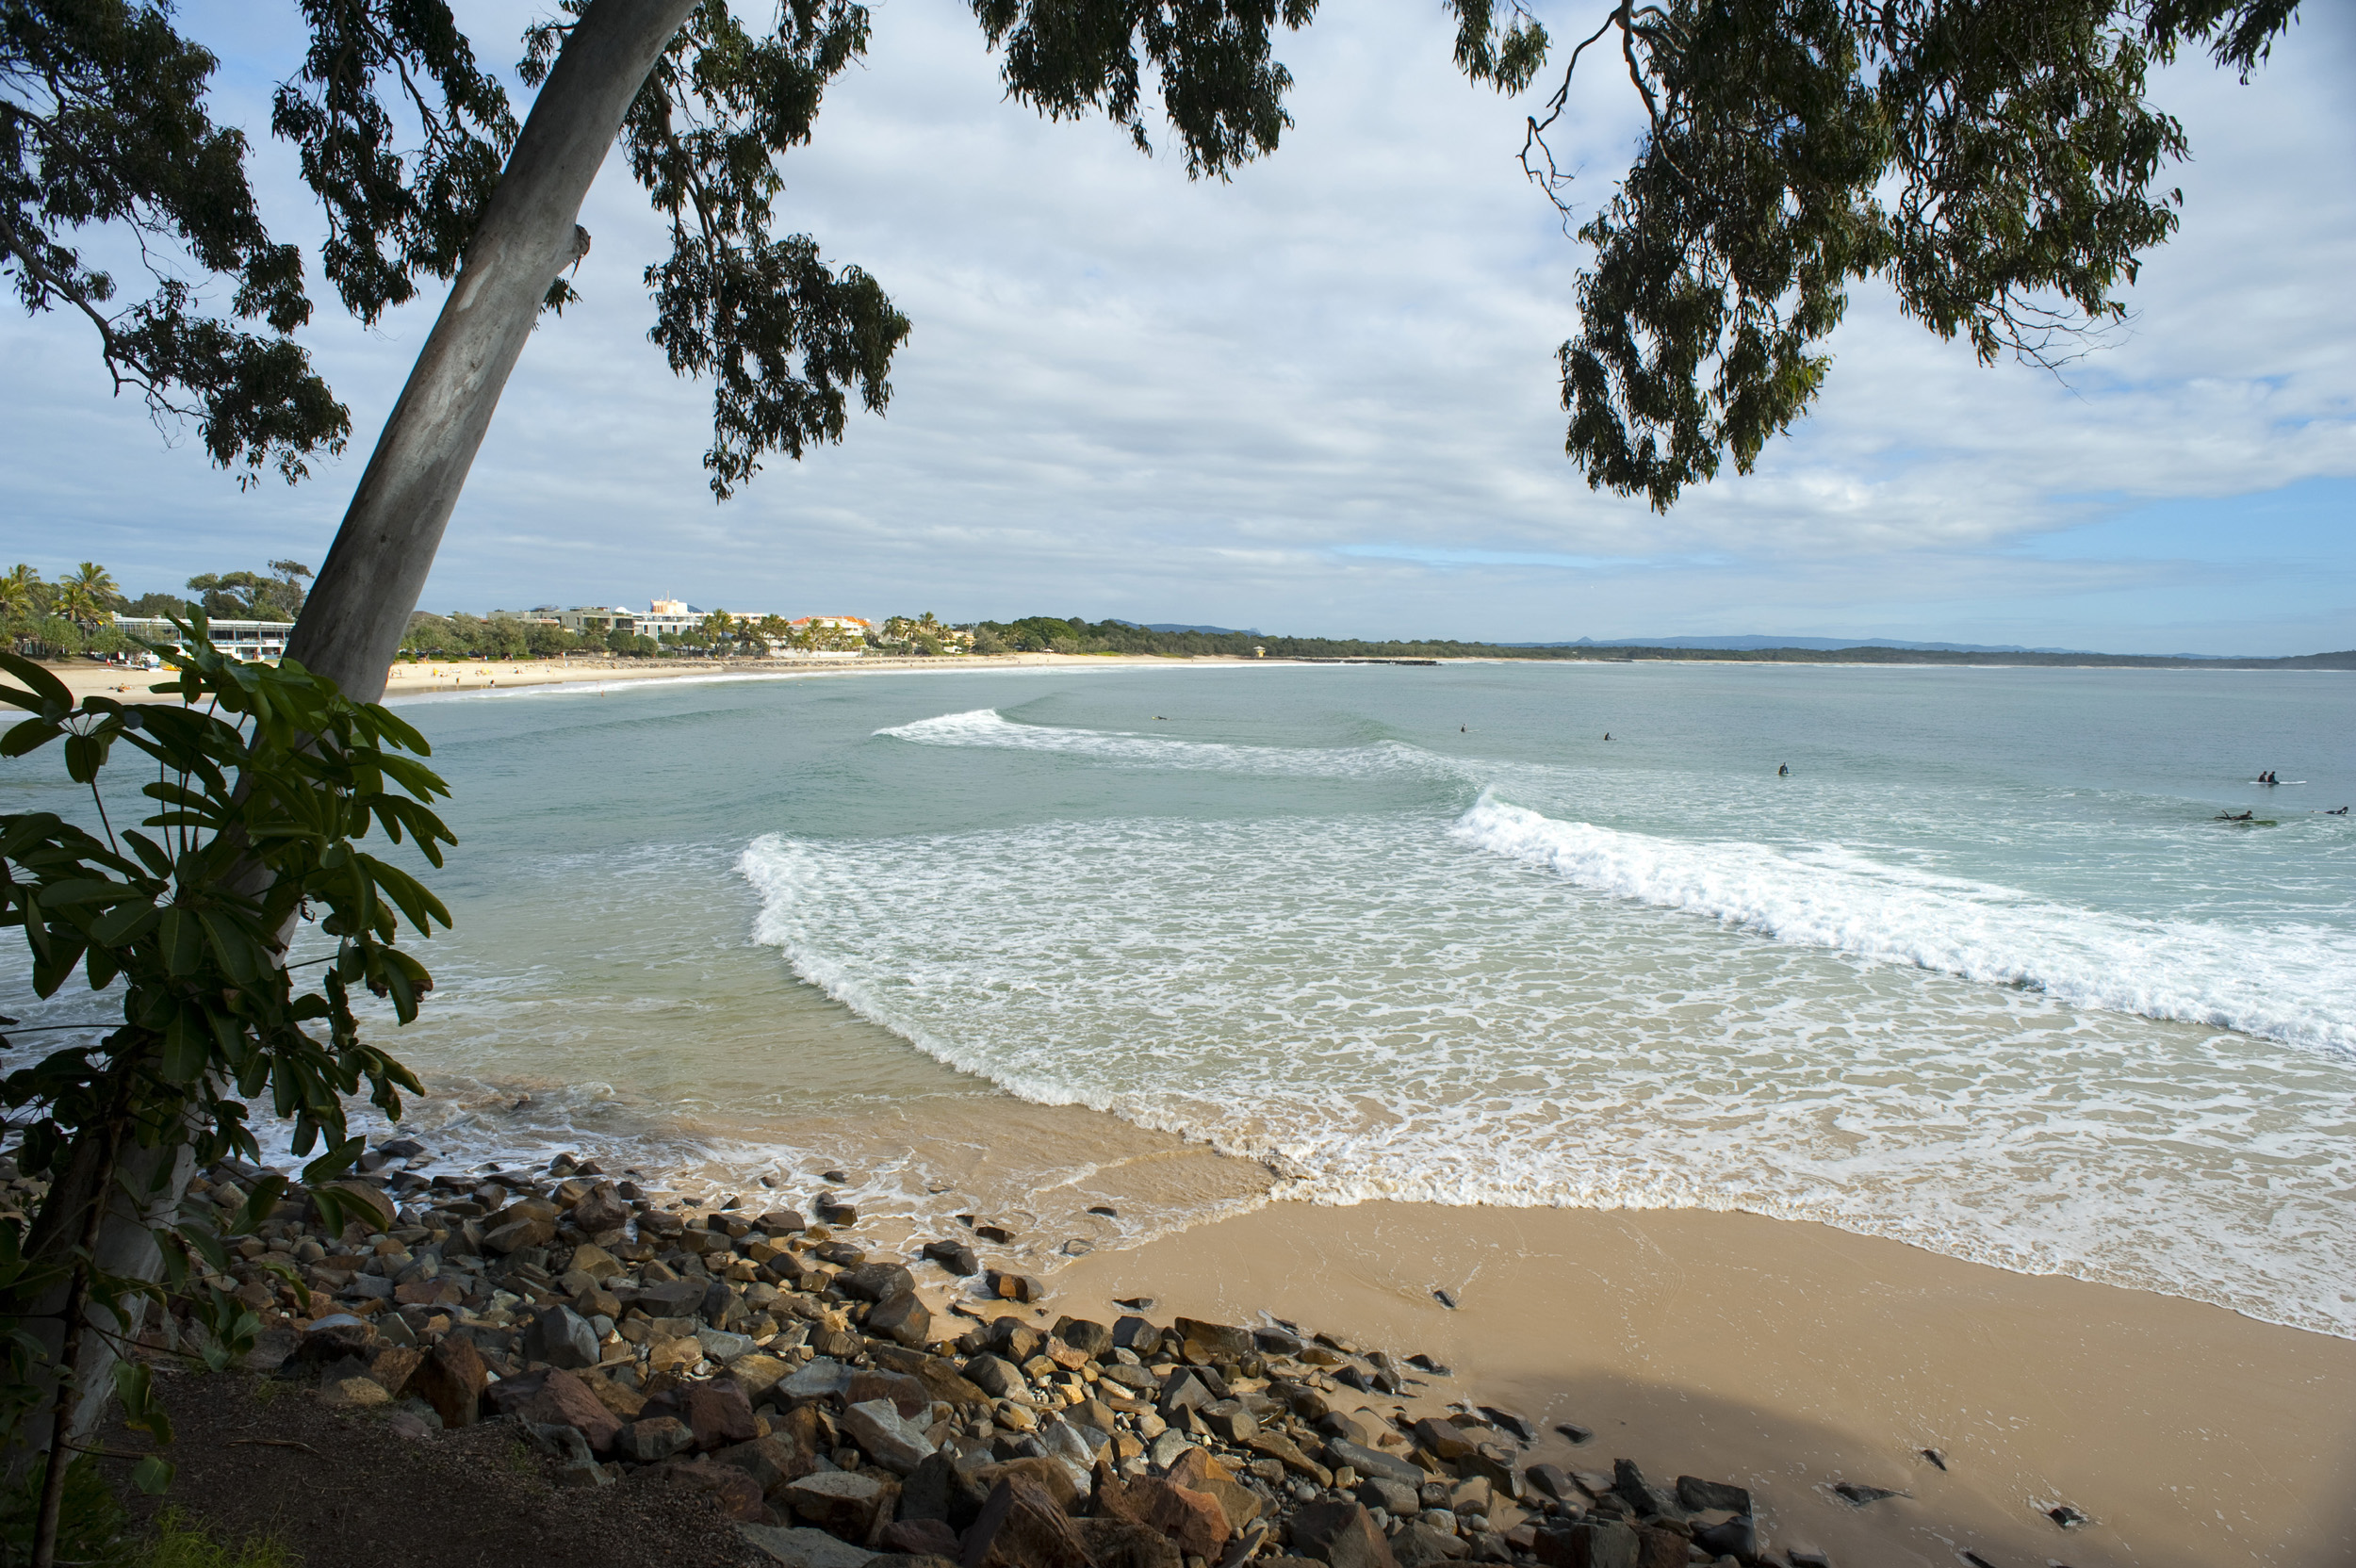 Tranquil tropical beach at Noosa, Queensland with gentle surf lapping the golden sand in this popular resort